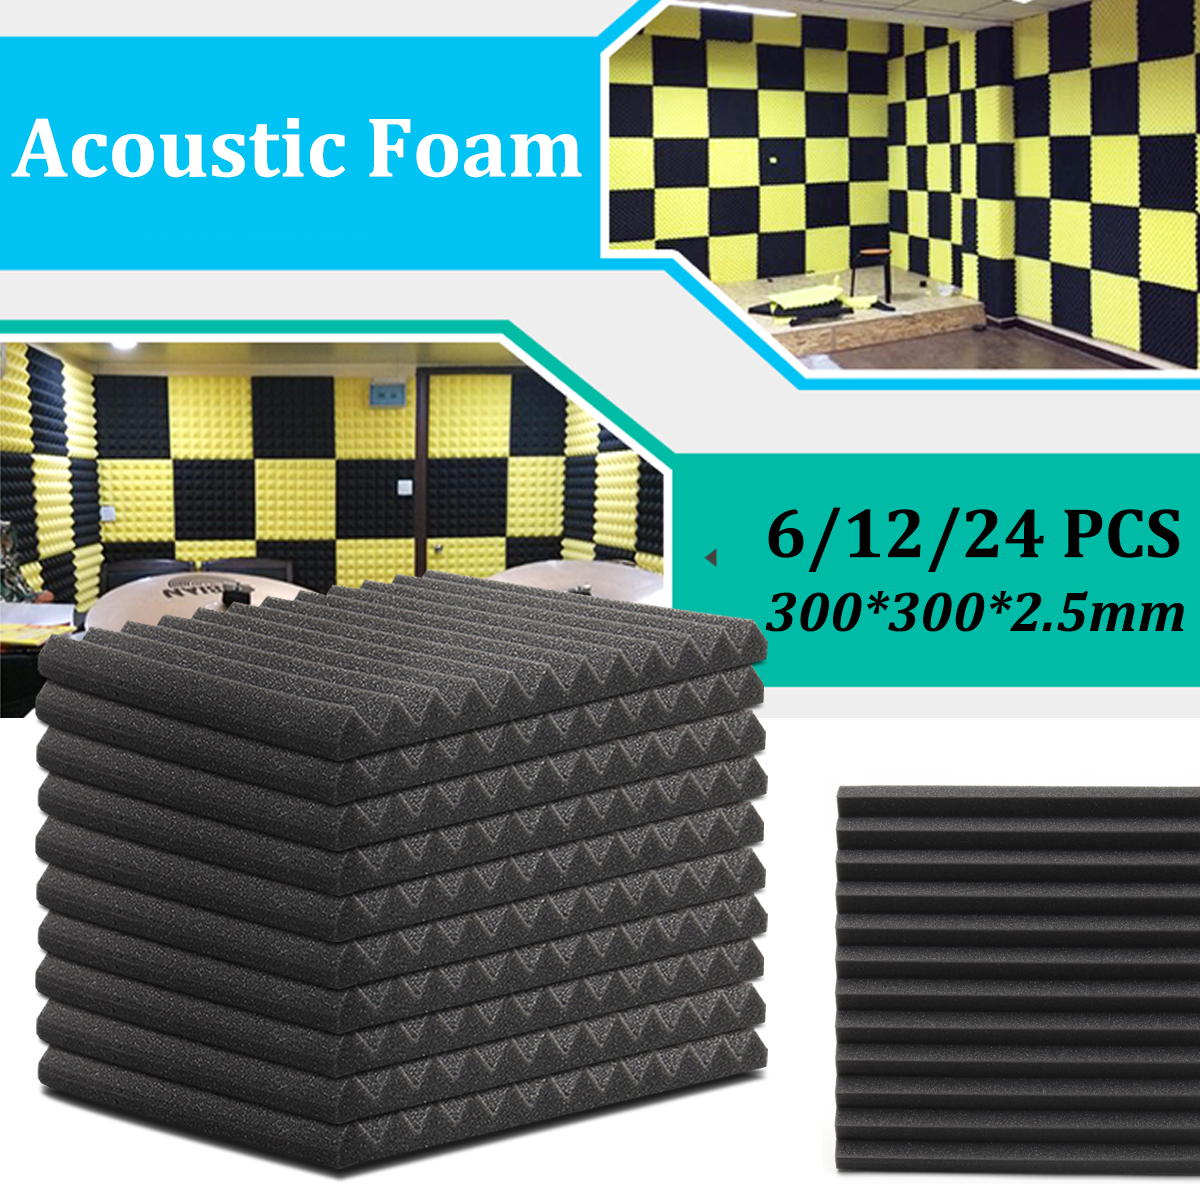 6Pcs /12Pcs 300*300*25mm Acoustic Soundproof Sound Stop Absorption Soundproofing Foam For KTV Audio Room Studio Room